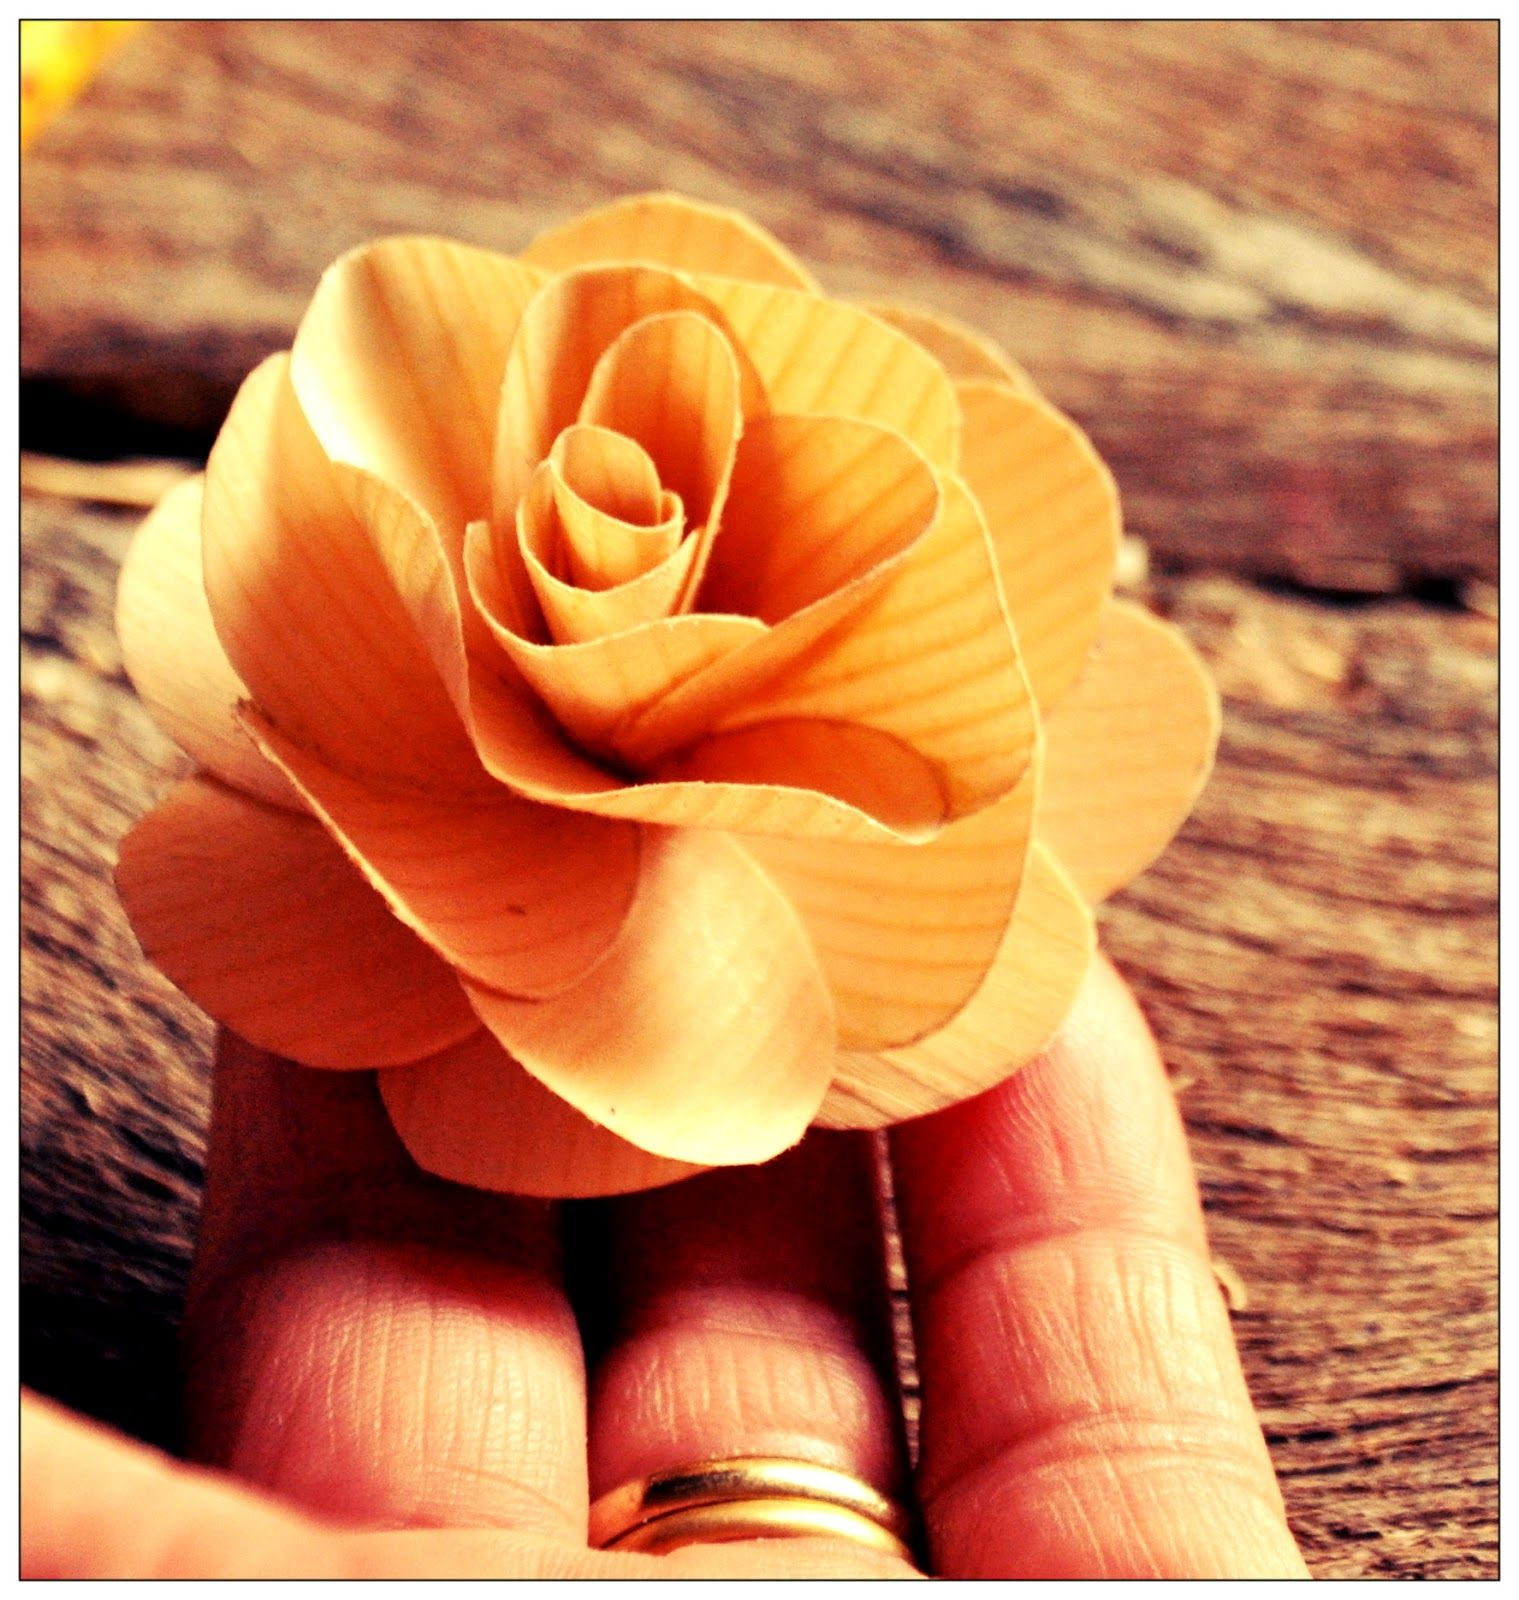 Tutorial on How to Make Wooden Roses Using Birch wood